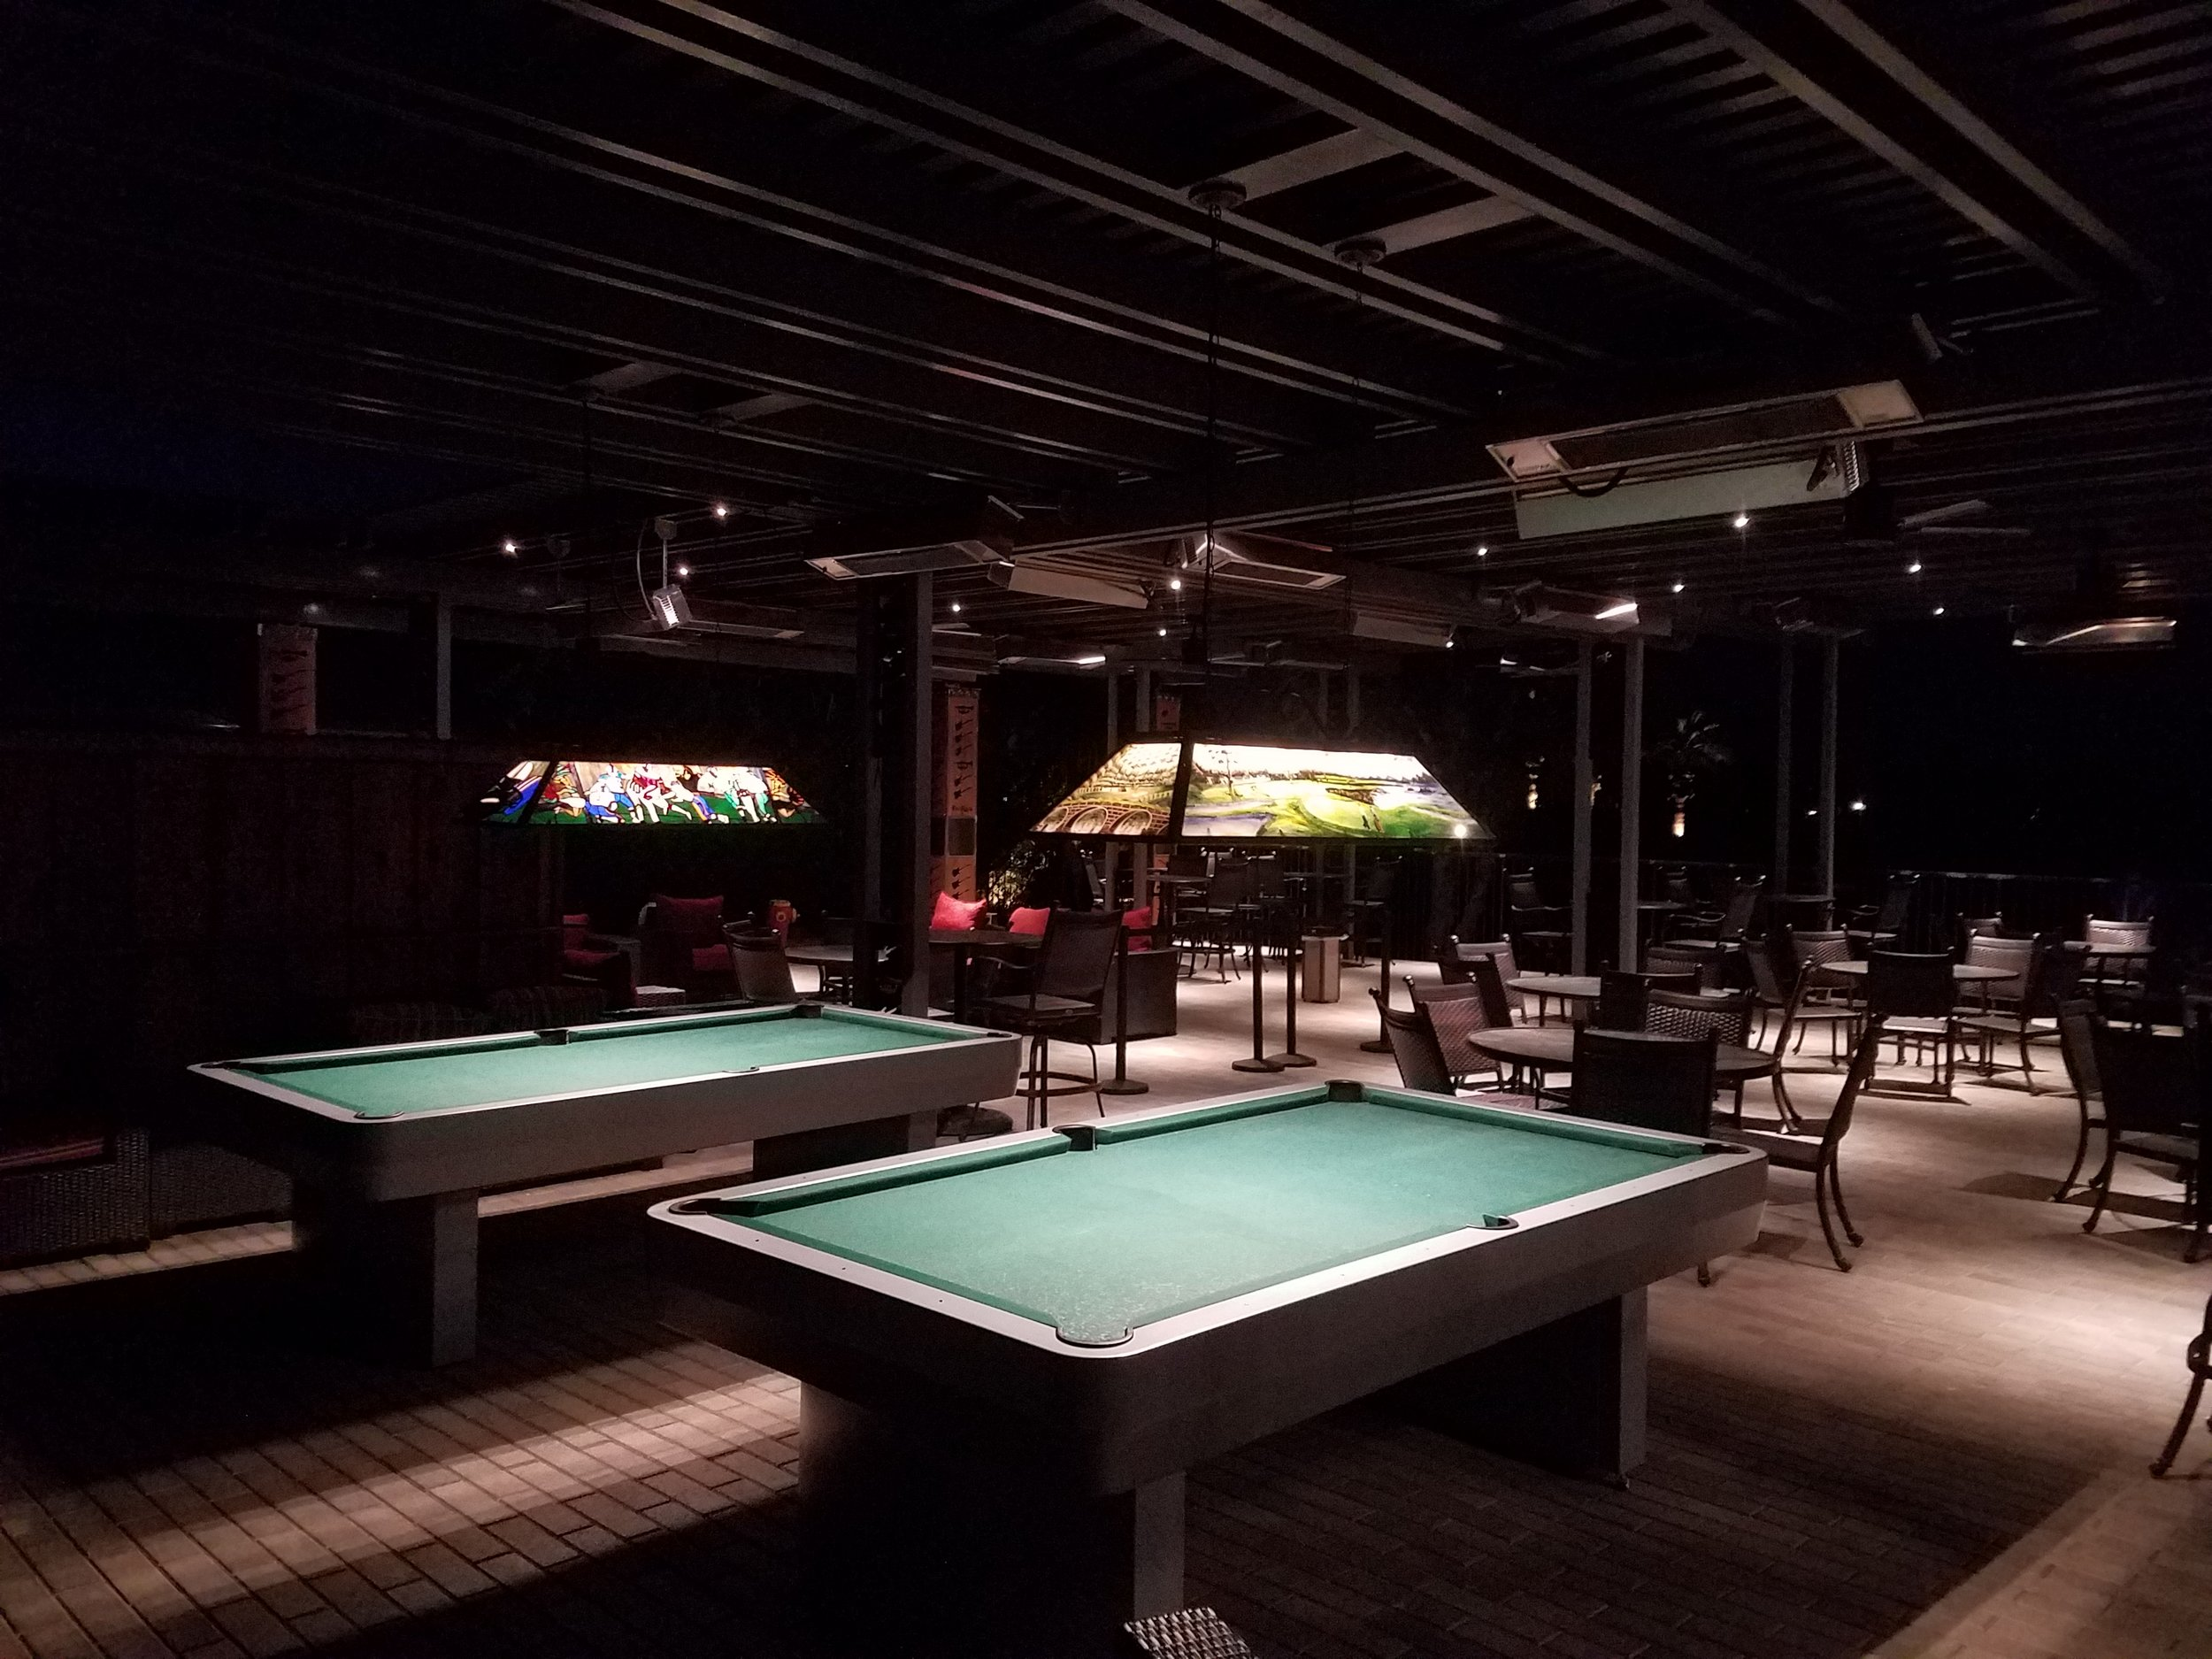 Lattice covered outdoor pool table